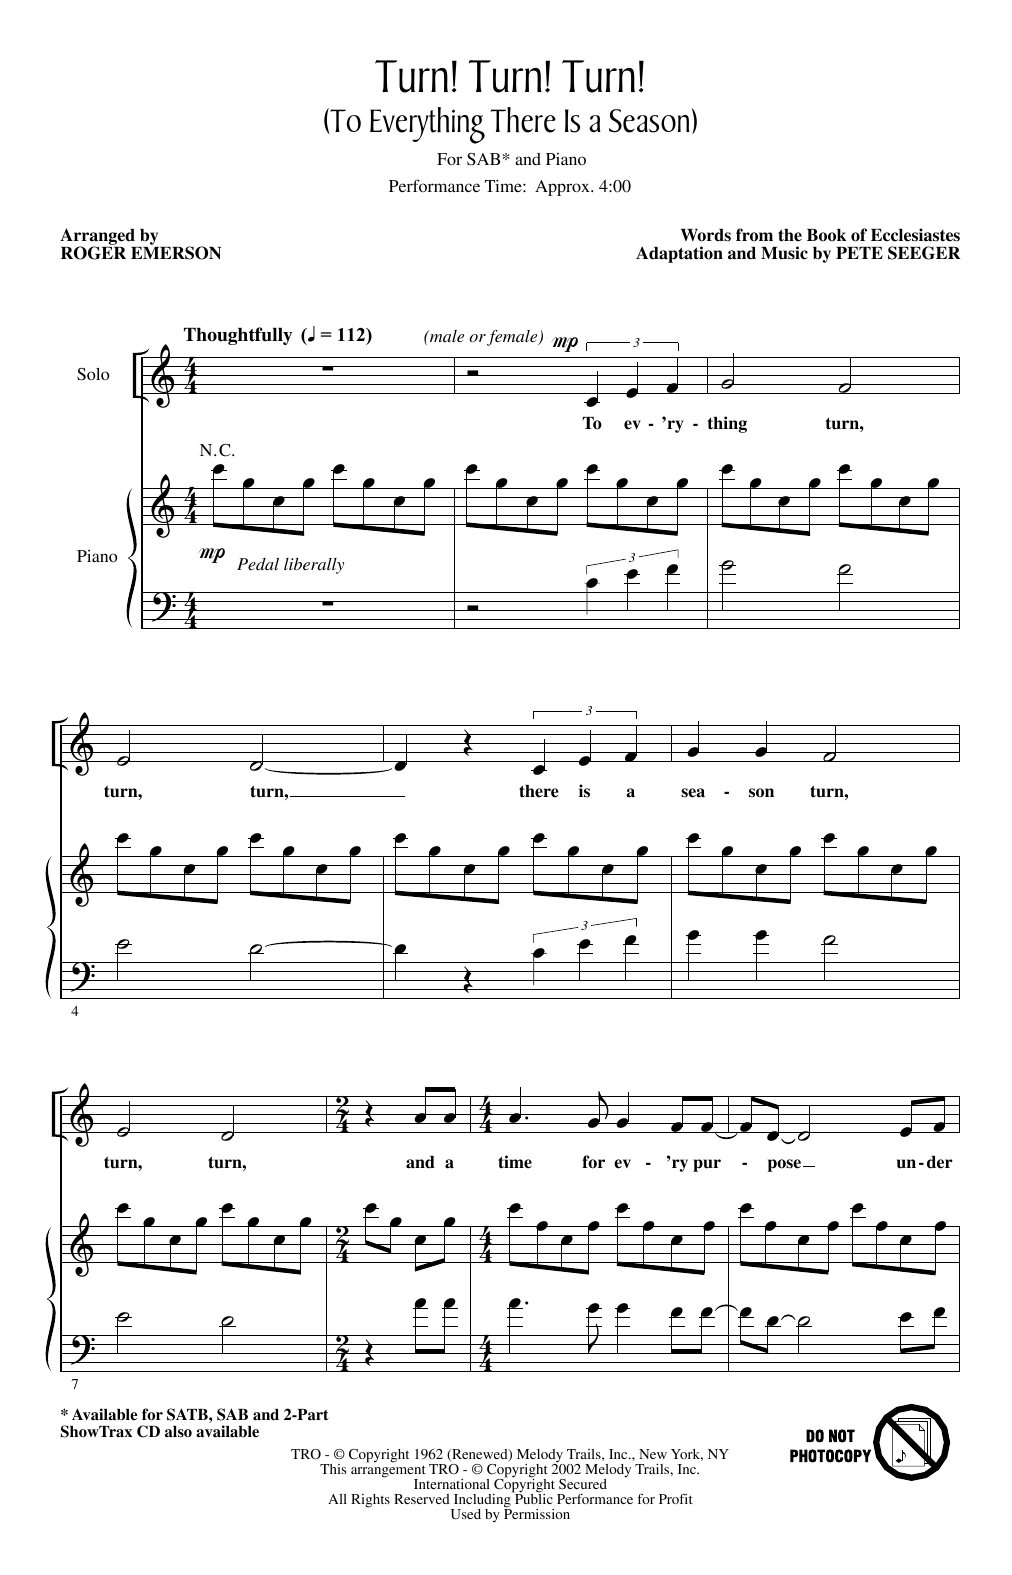 Turn! Turn! Turn! (To Everything There Is A Season) (arr. Roger Emerson) (SAB Choir)